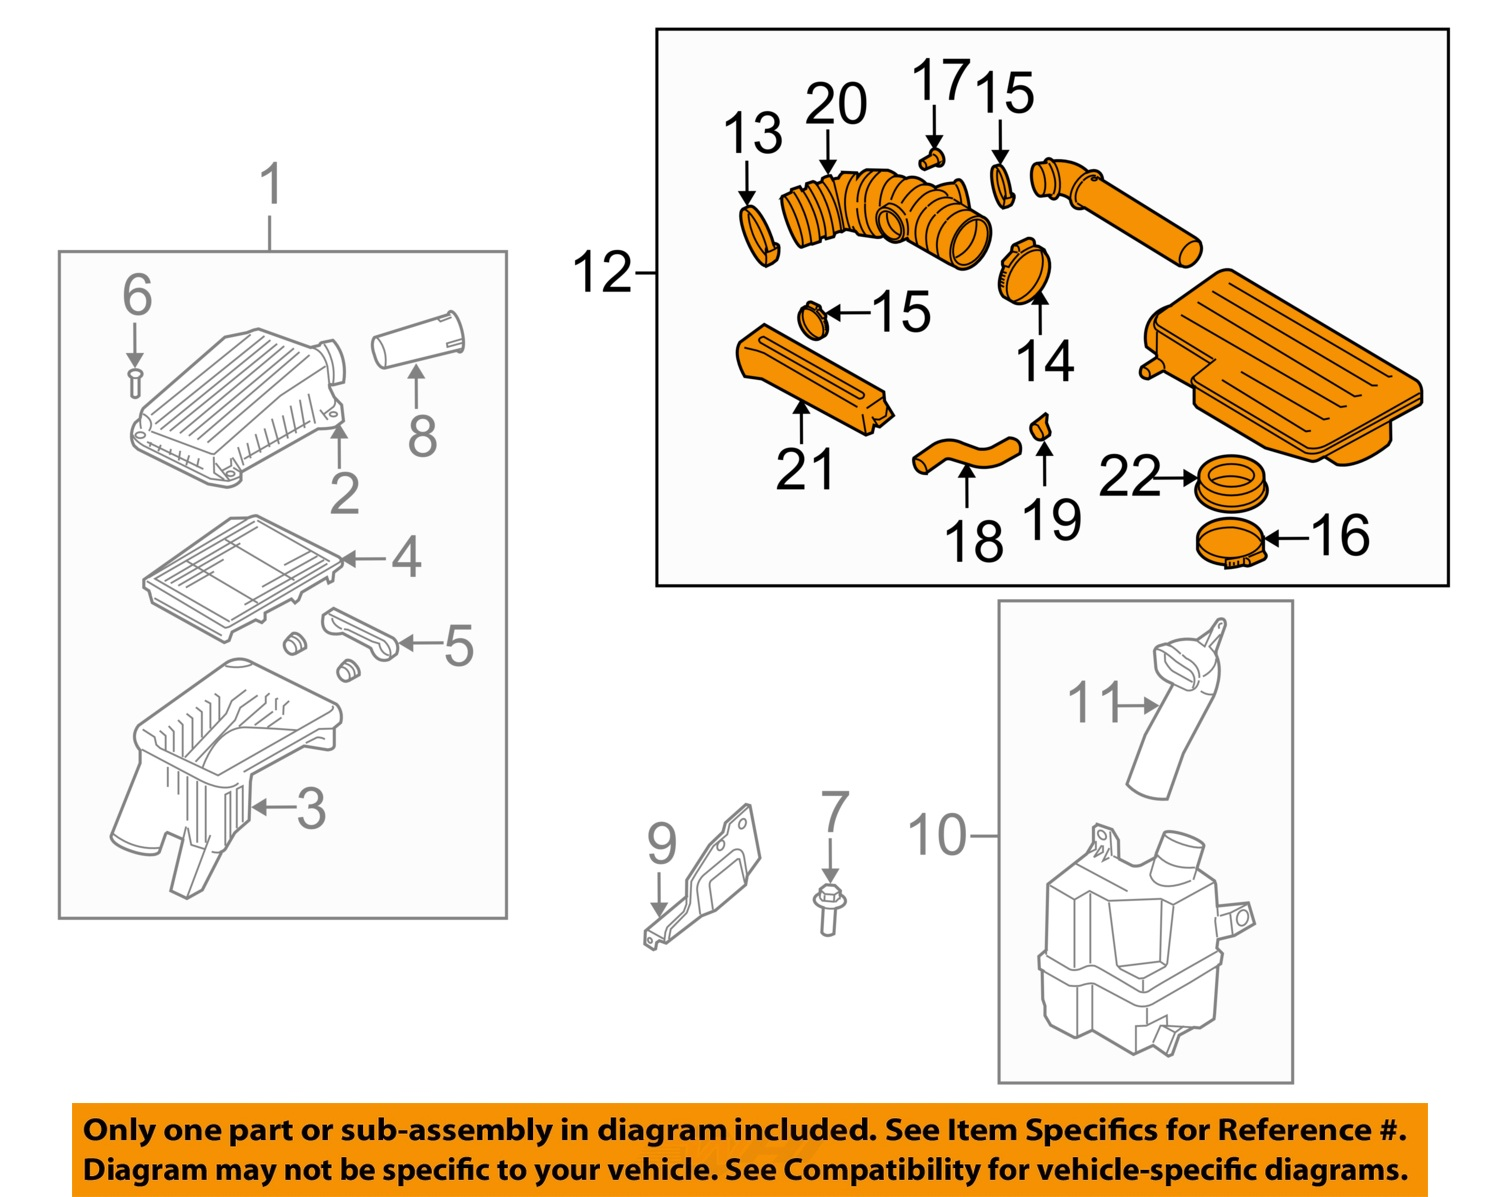 Suzuki Aerio 2005 Parts Diagram Auto Electrical Wiring 2004 Chrysler Sebring 6 Cyl Fuse Box 2008 Reno 2003